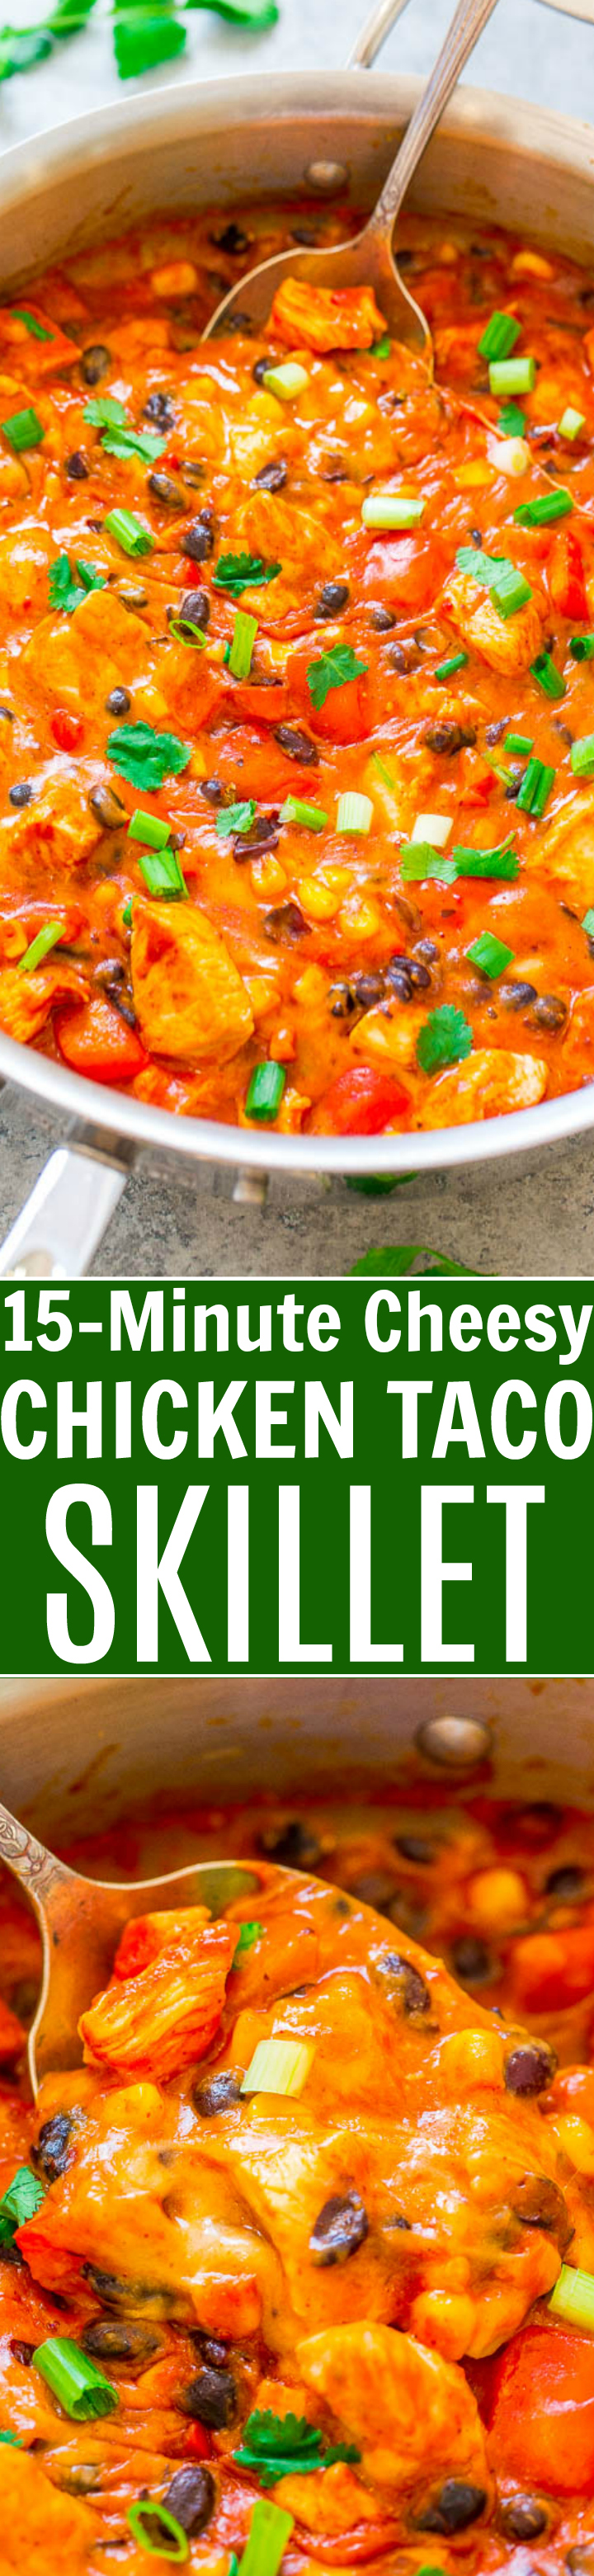 15-Minute Cheesy Chicken Taco Skillet - Craving tacos minus all the empty carbs? This EASY taco skillet without tortillas is PERFECT!! Fast, EASY, loaded with awesome Mexican-inspired flavors and it's super CHEESY!!